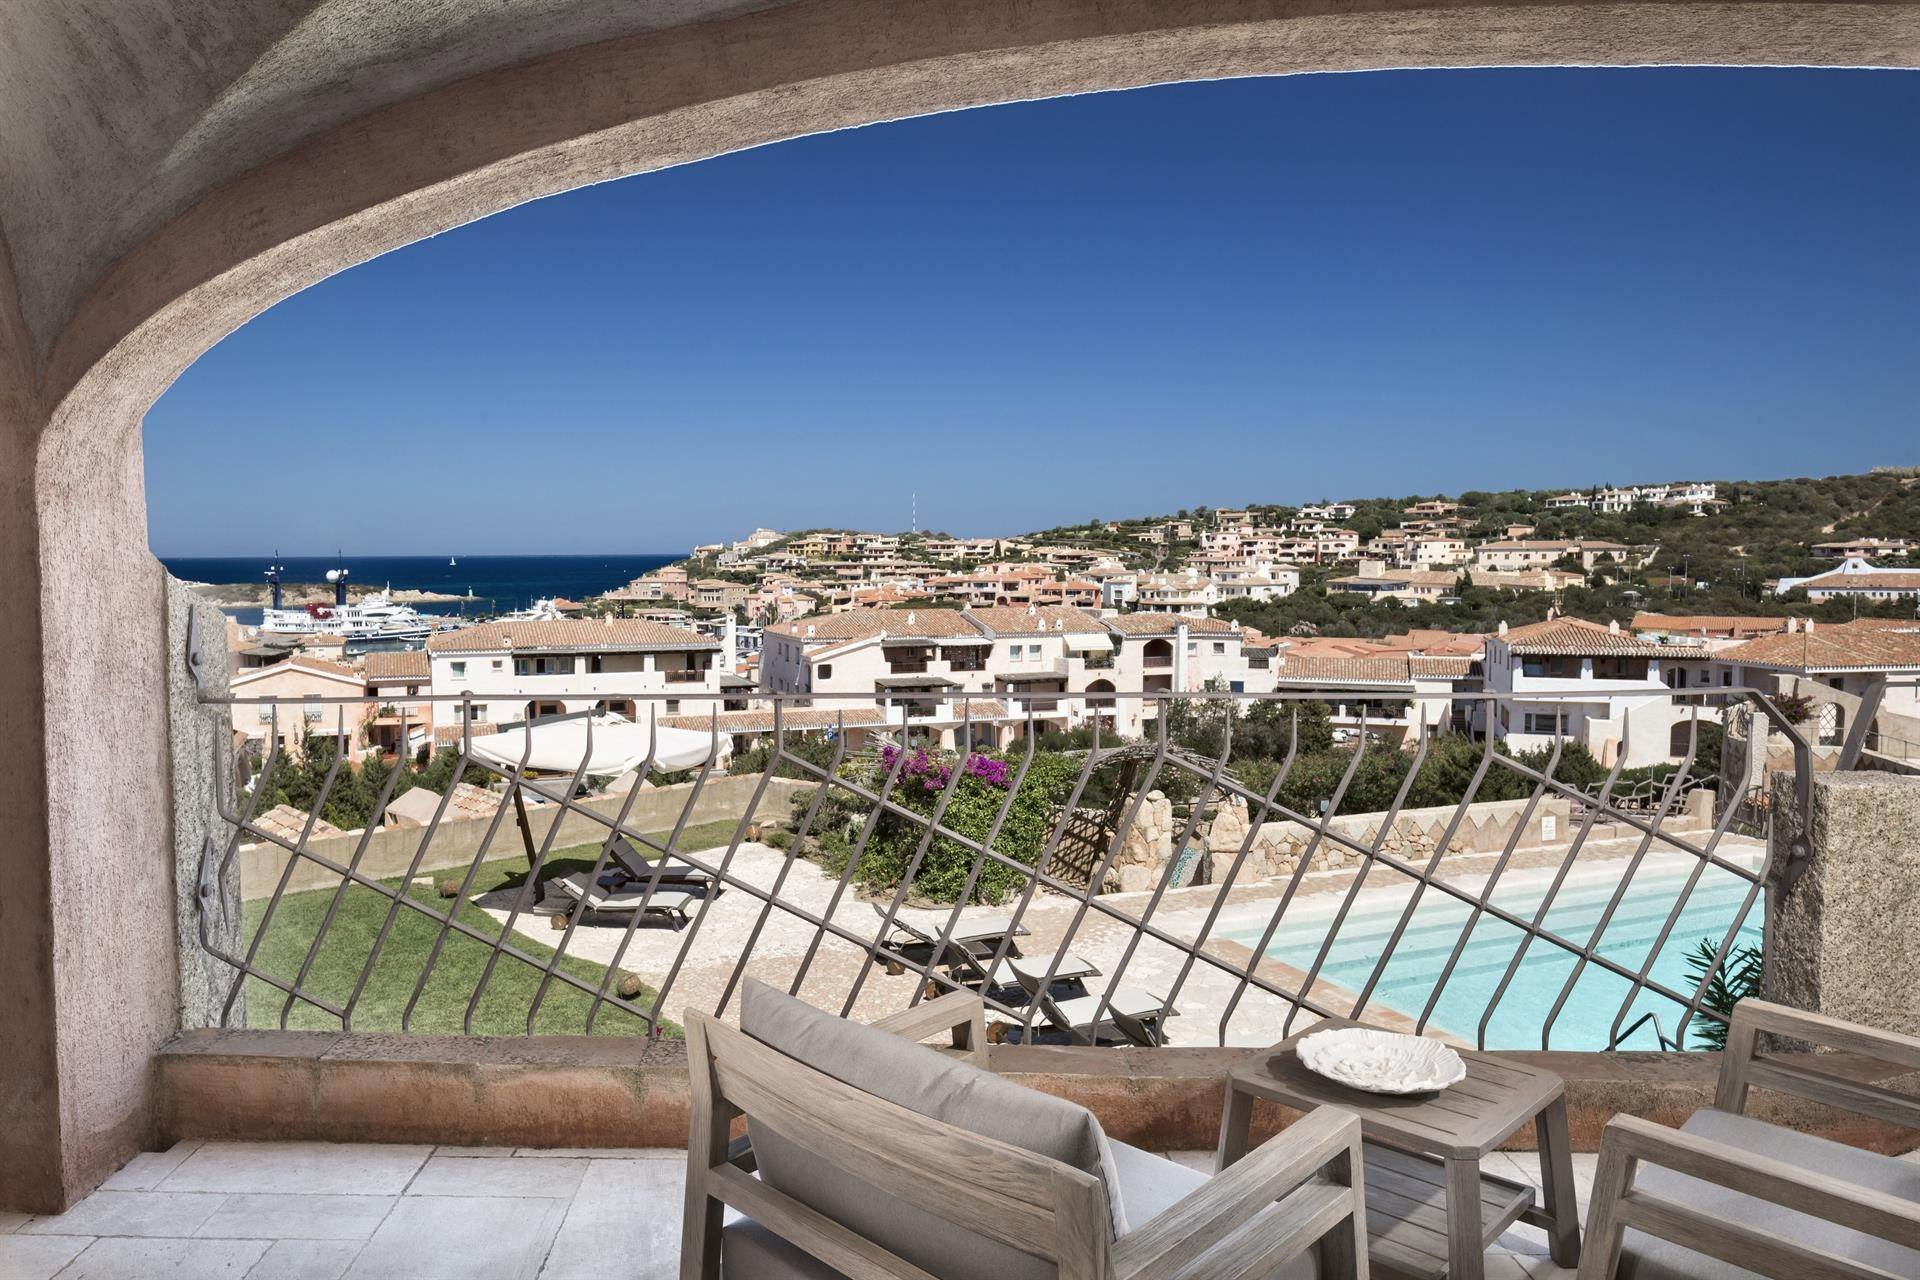 Residence/Apartment for Sale at Luxury Apartment on the Marina Porto Cervo, Olbia Tempio,07021 Italy